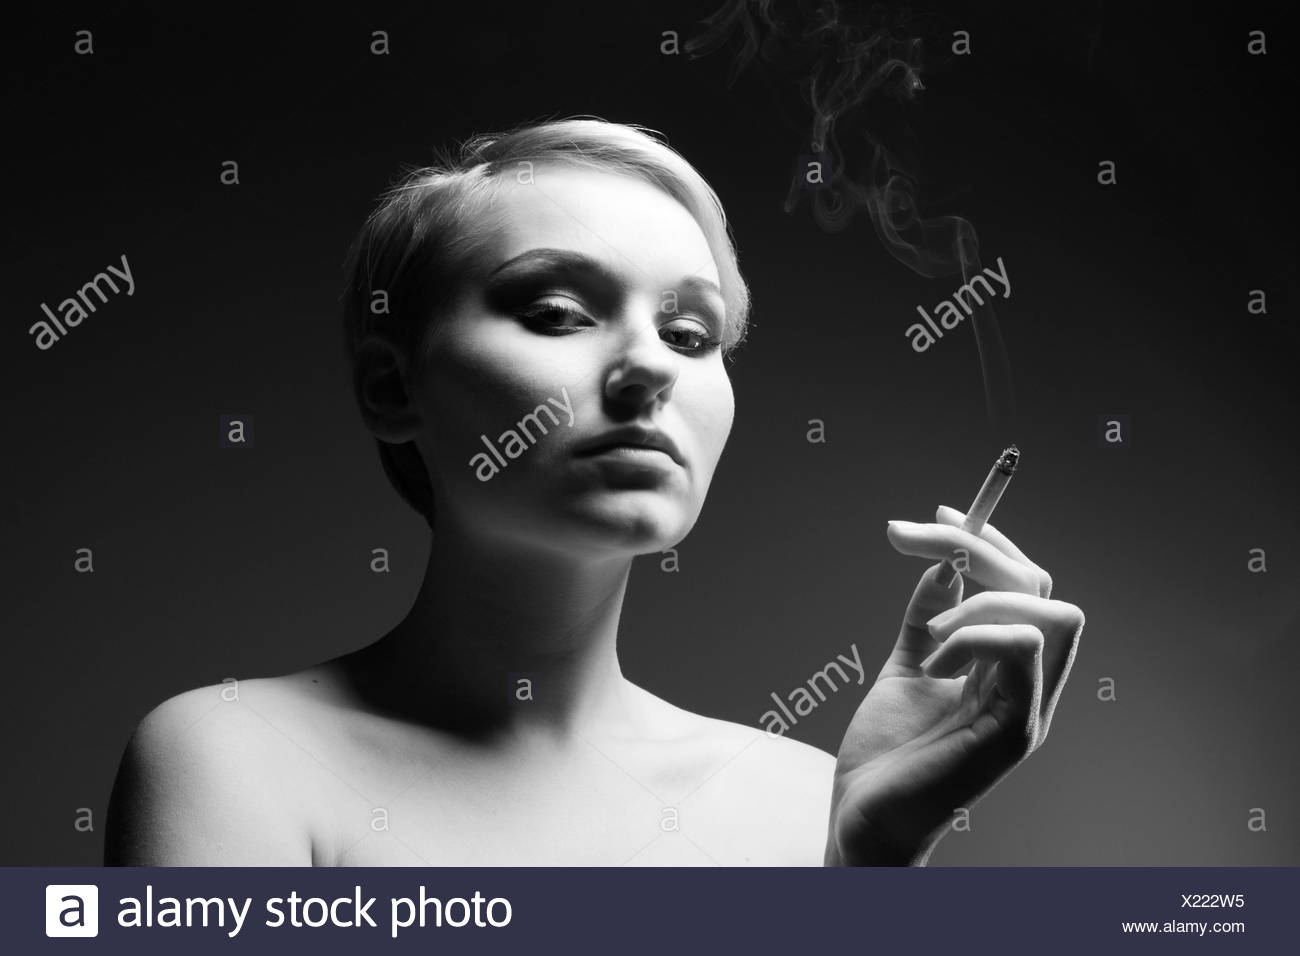 Black and white portrait of a woman with cigarette Stock Photo